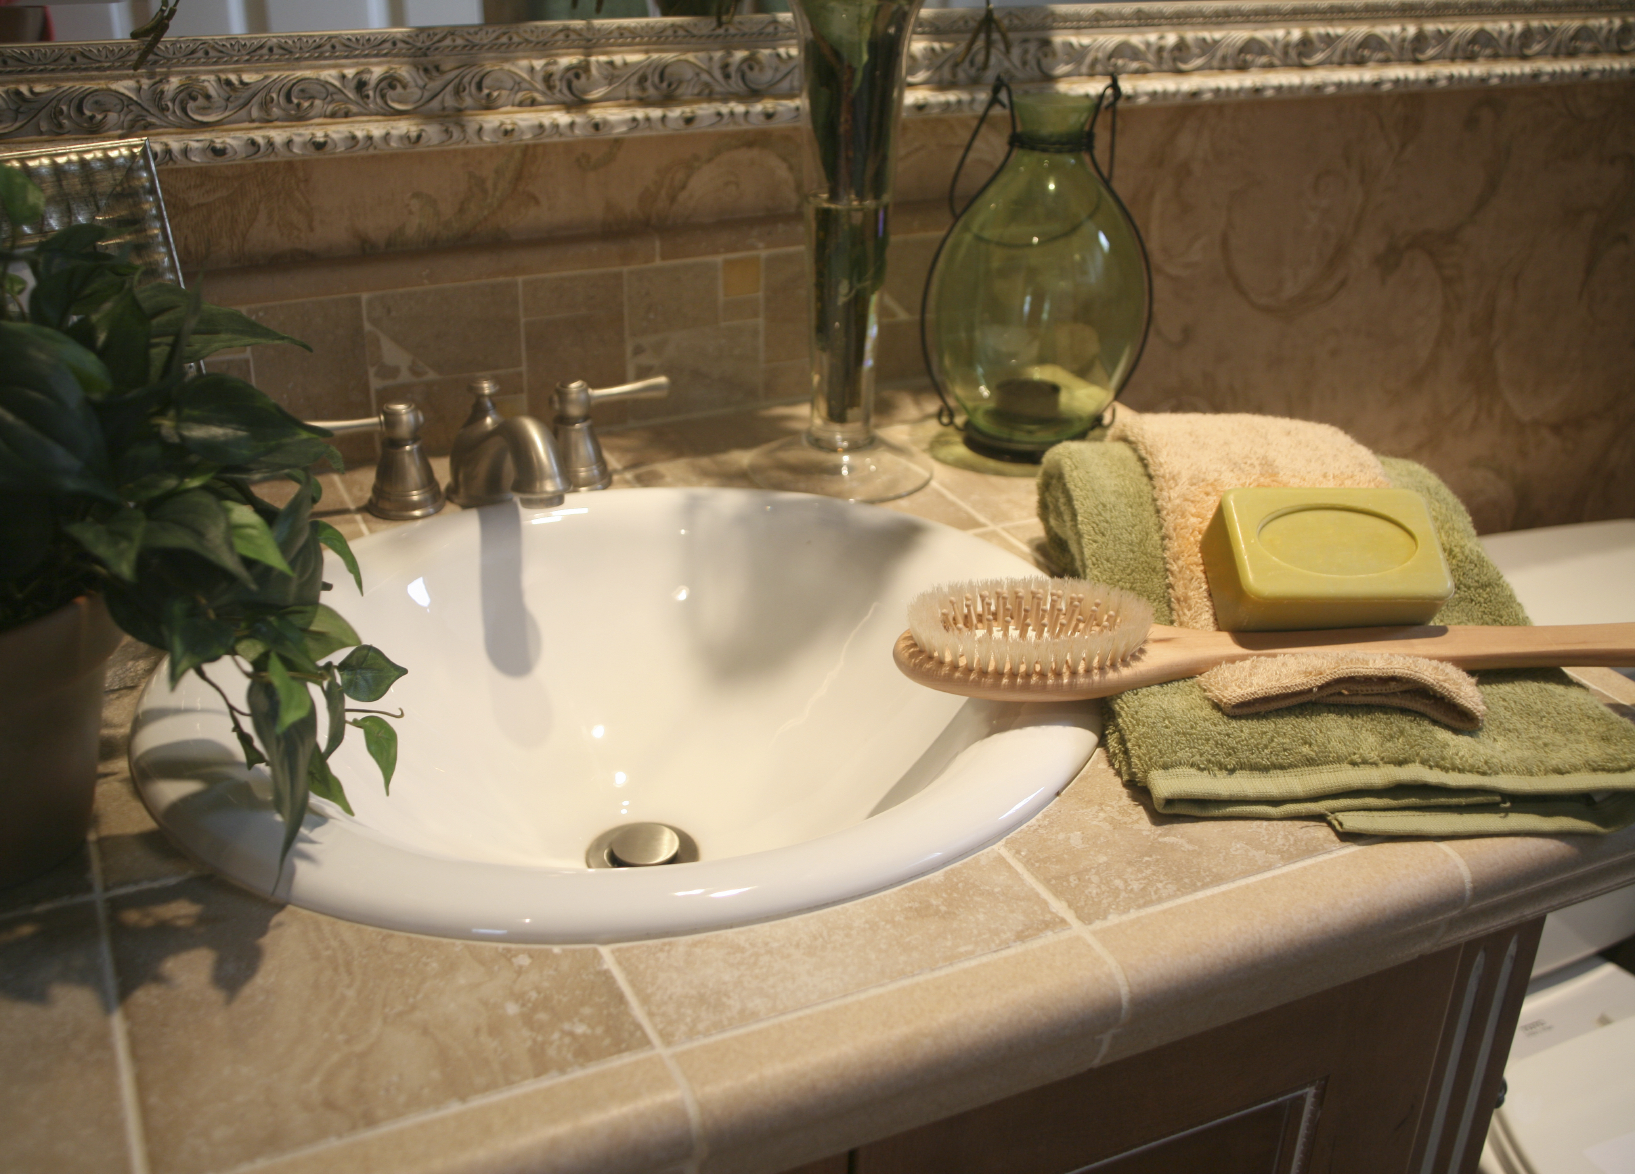 Bathroom Makeover Ideas Budget Layout Colorbuilddirect